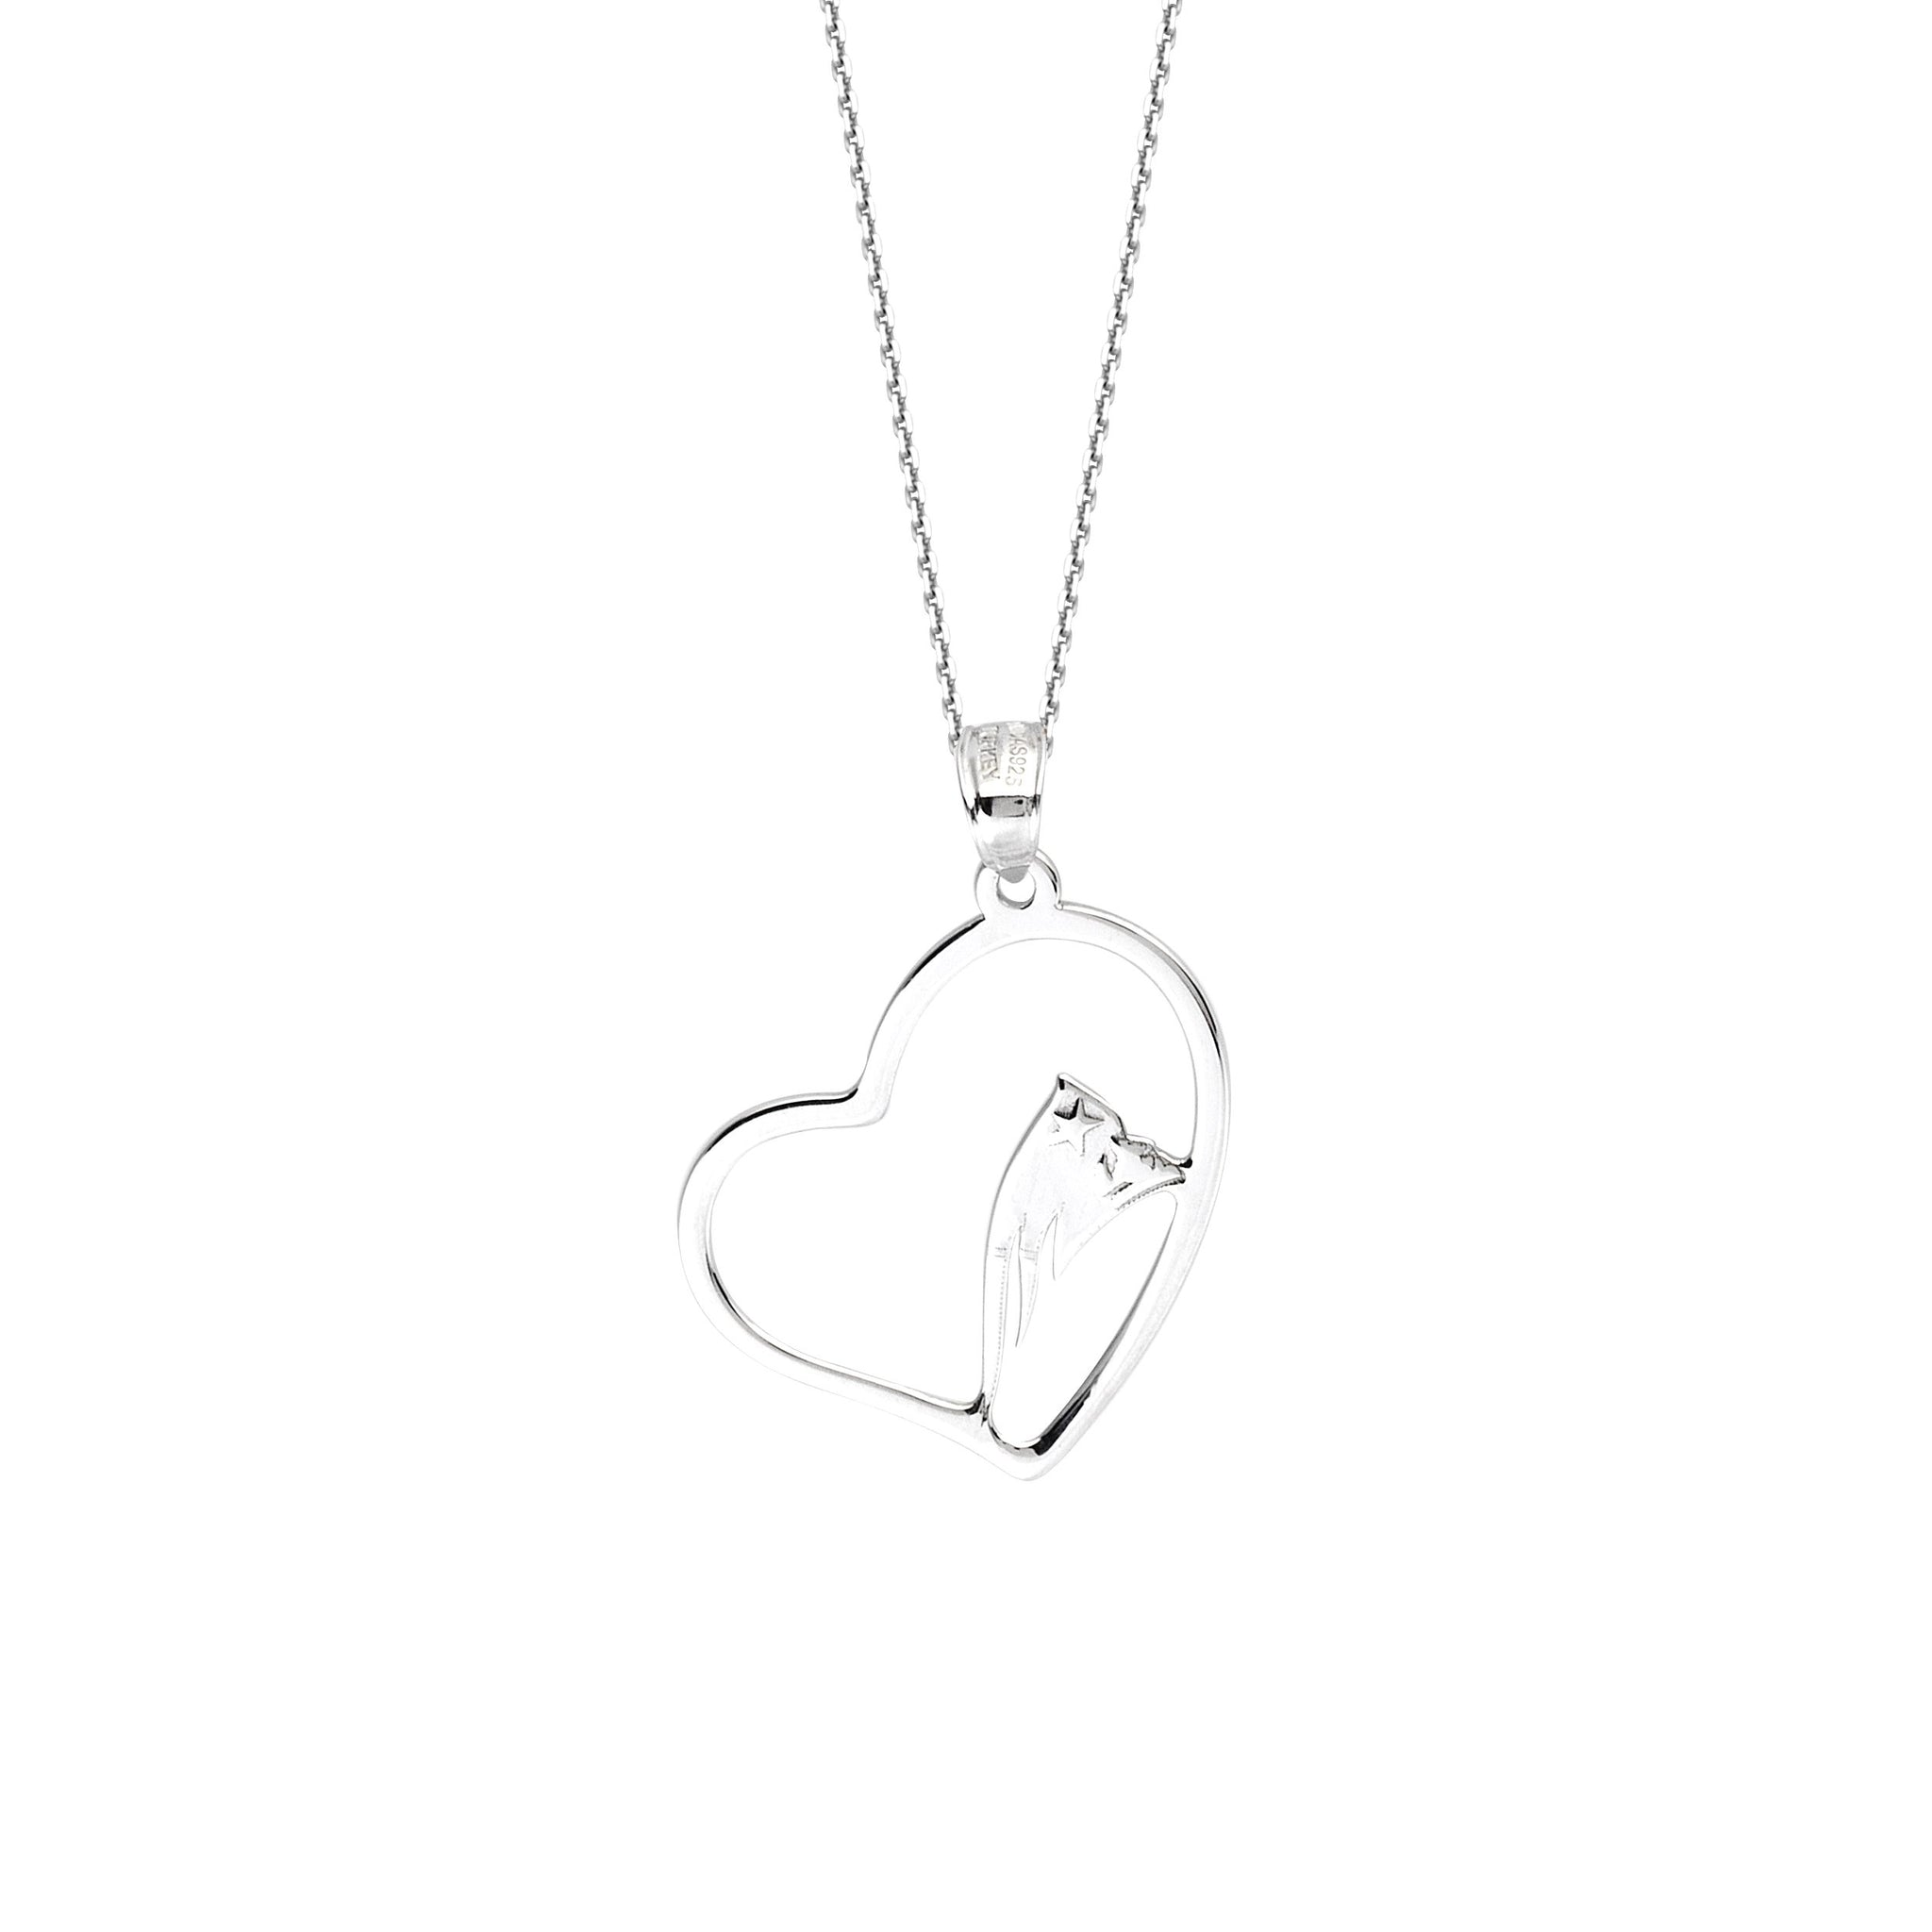 NFL Team Slanted Heart Necklace - New England Patriots